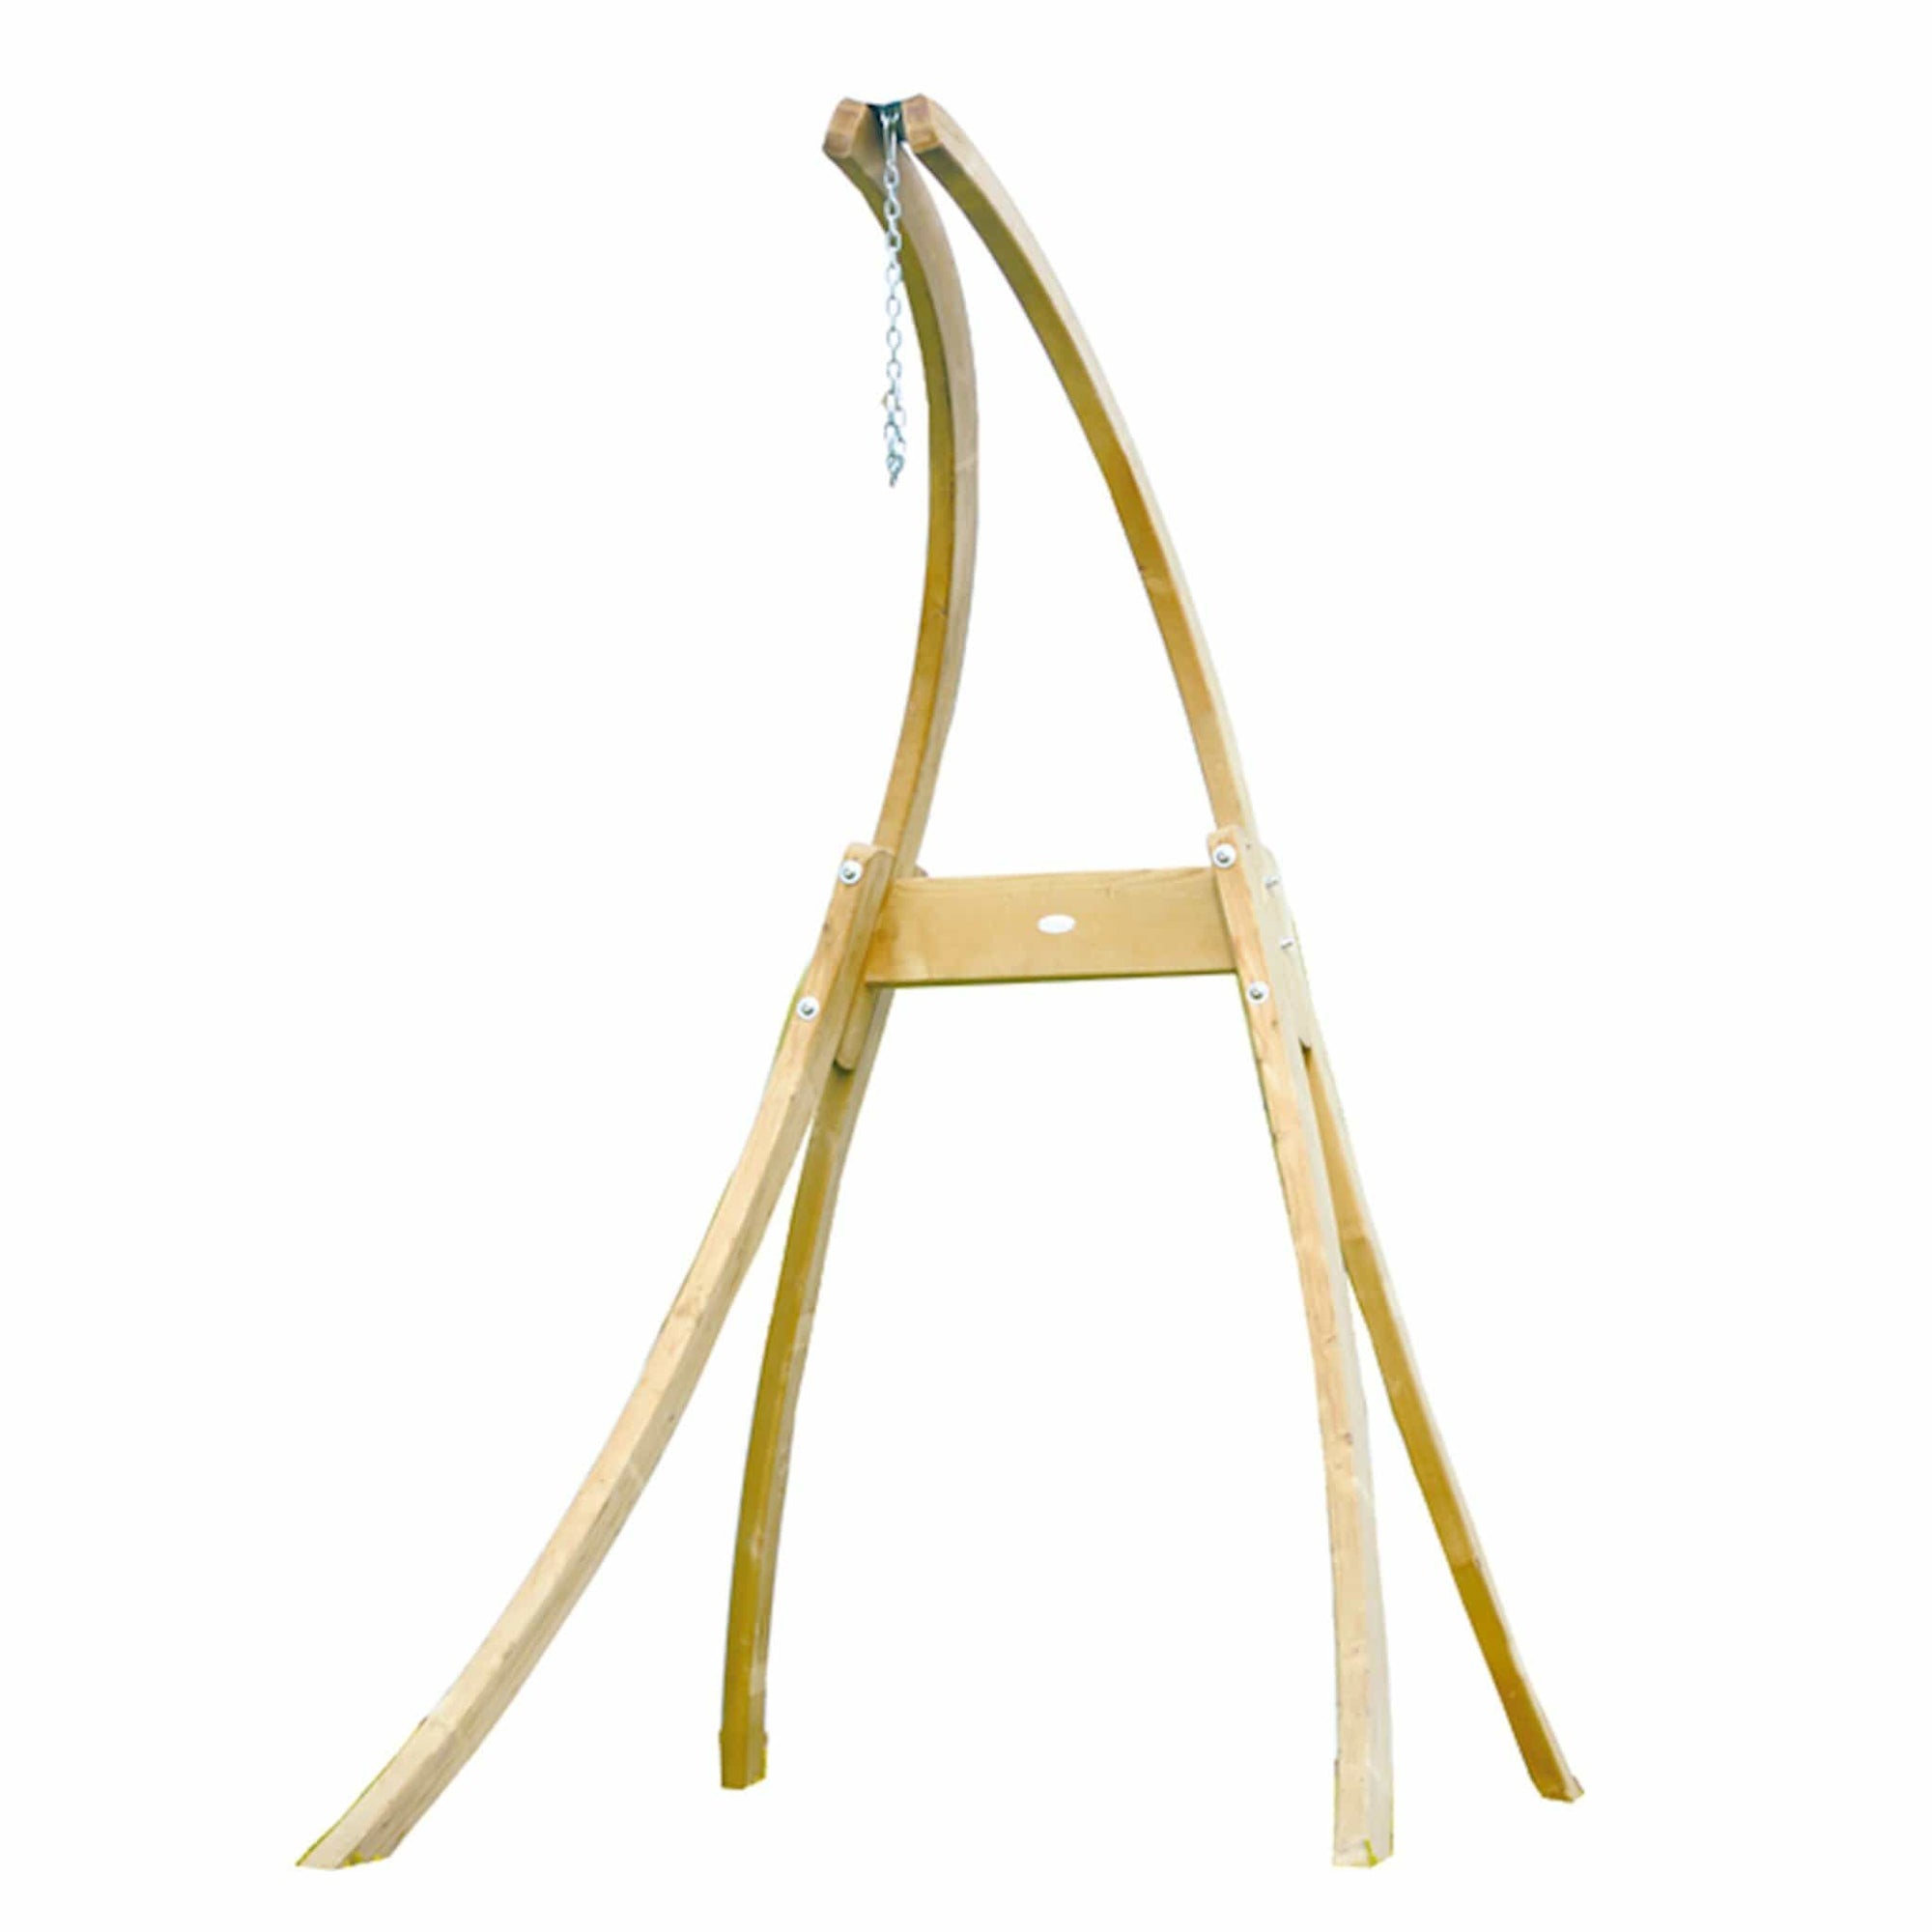 Hammock chair wooden stand